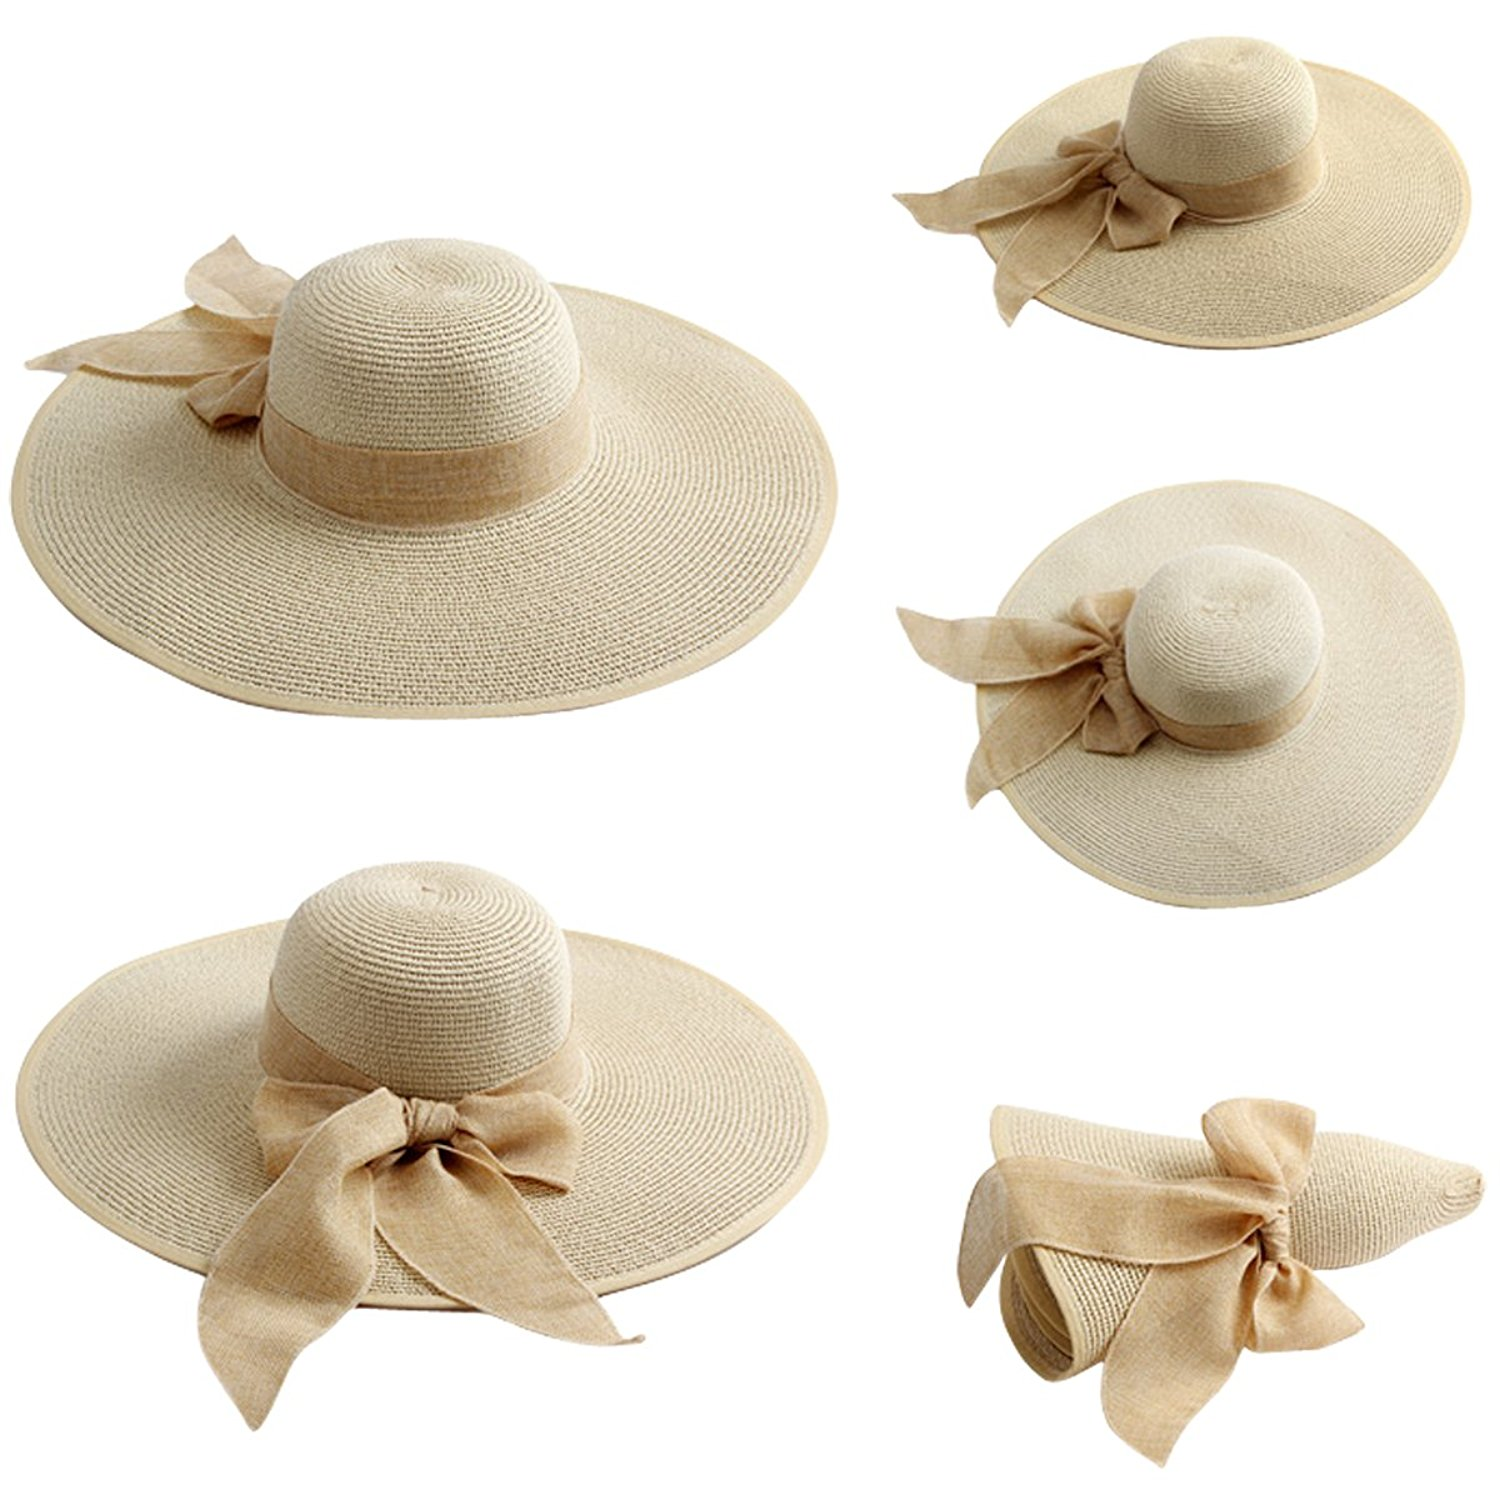 defac9e939f58 Lanzom Womens Big Bowknot Straw Hat Floppy Foldable Roll up Beach Cap Sun  Hat UPF 50